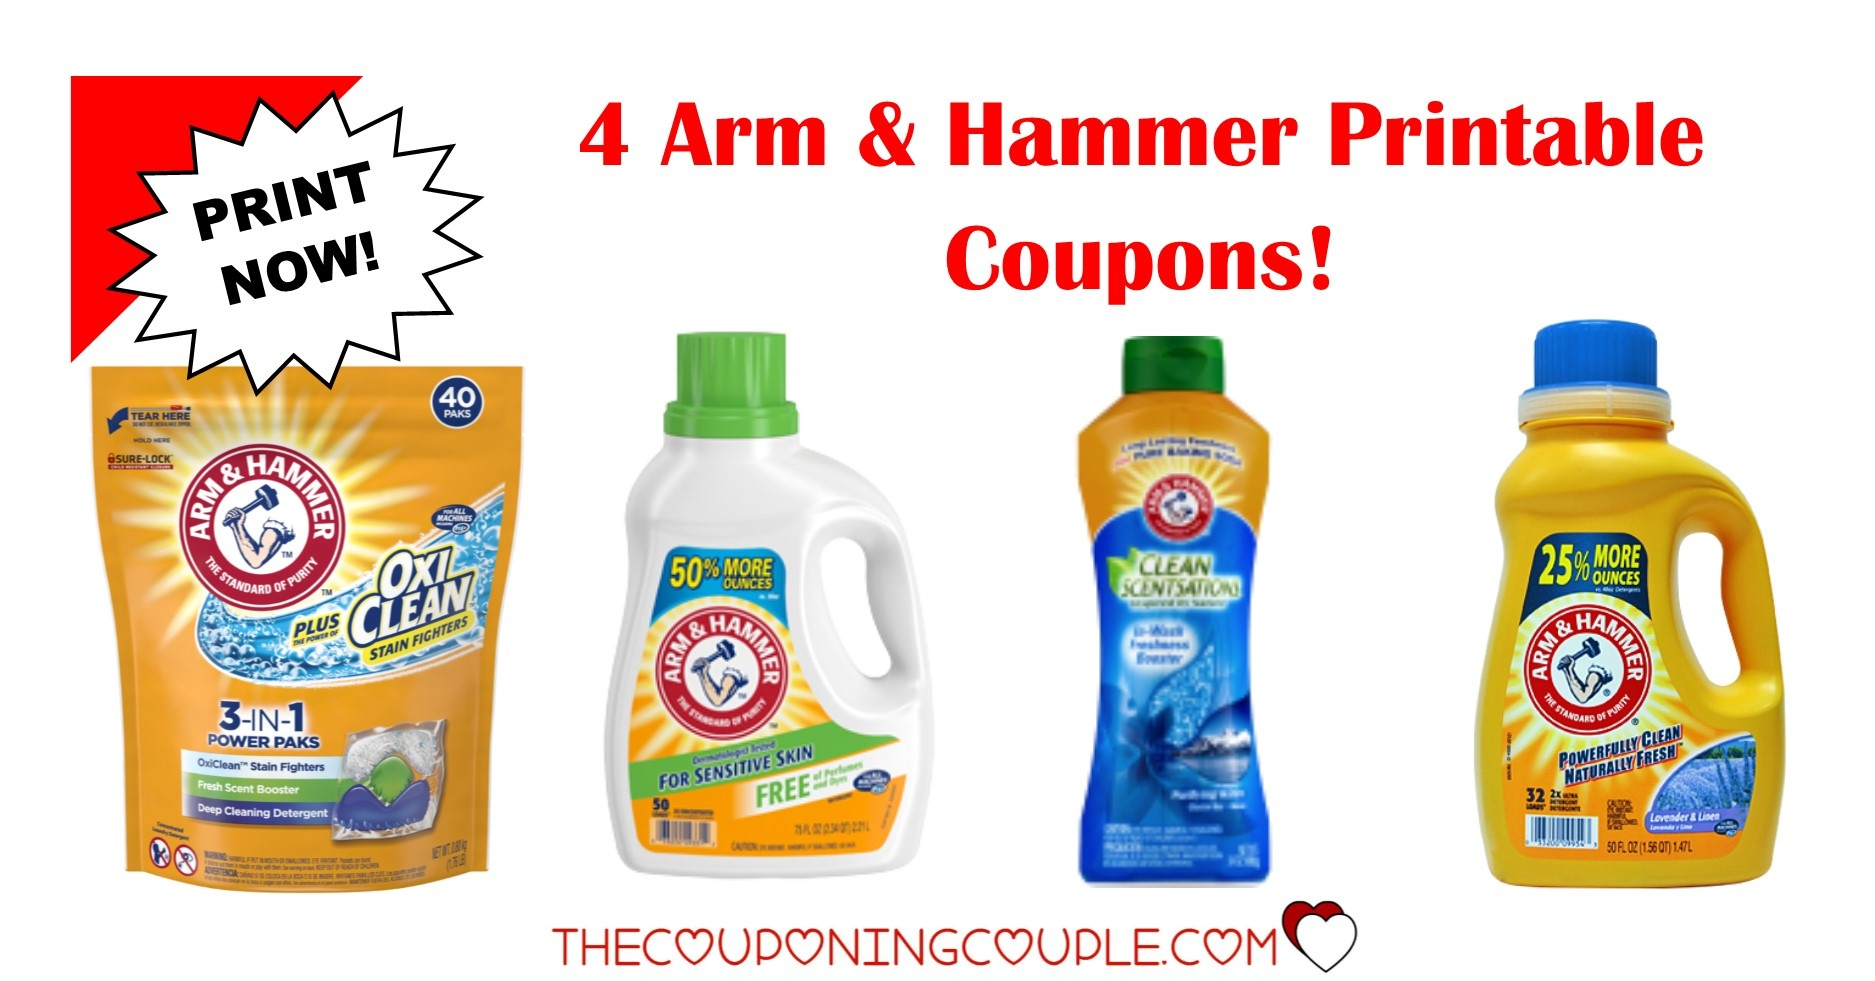 4 Arm & Hammer Printable Coupons ~ Print Now!! Don't Miss Out! - Free Printable Arm And Hammer Coupons